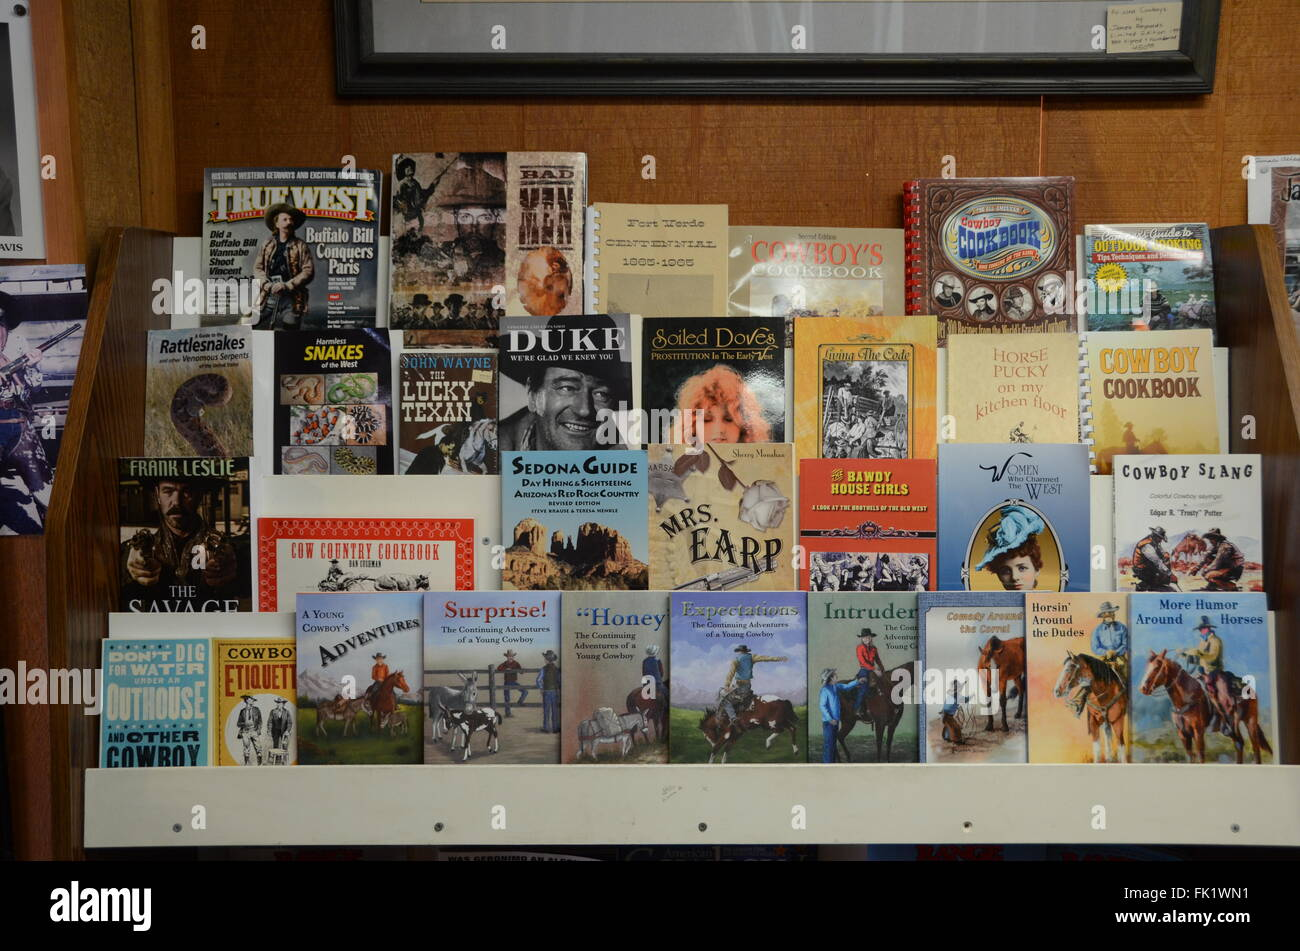 cowboy publications and books in sedona store childrens books history magazines - Stock Image